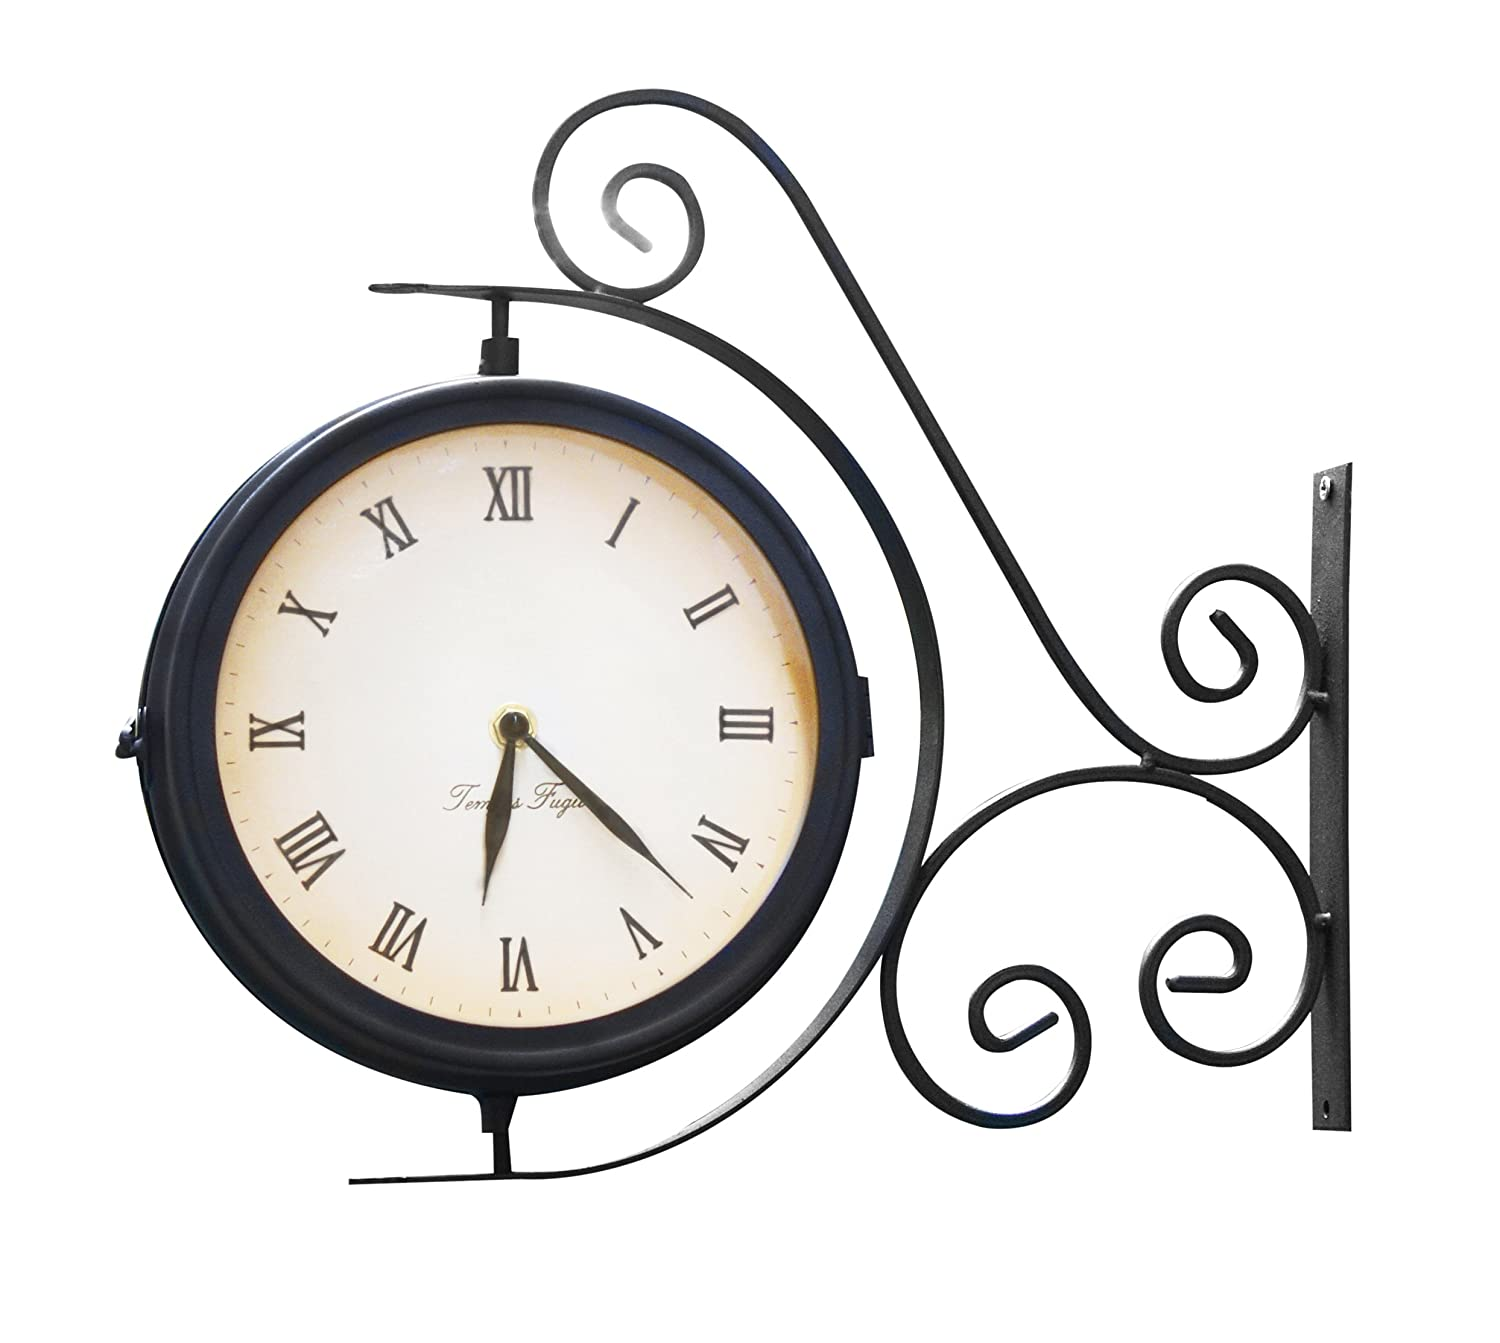 Amazon.com : Indoor Outdoor Garden Yard Bracket Clock U0026 Thermometer  (13.8ins) : Outdoor Clock Large : Garden U0026 Outdoor